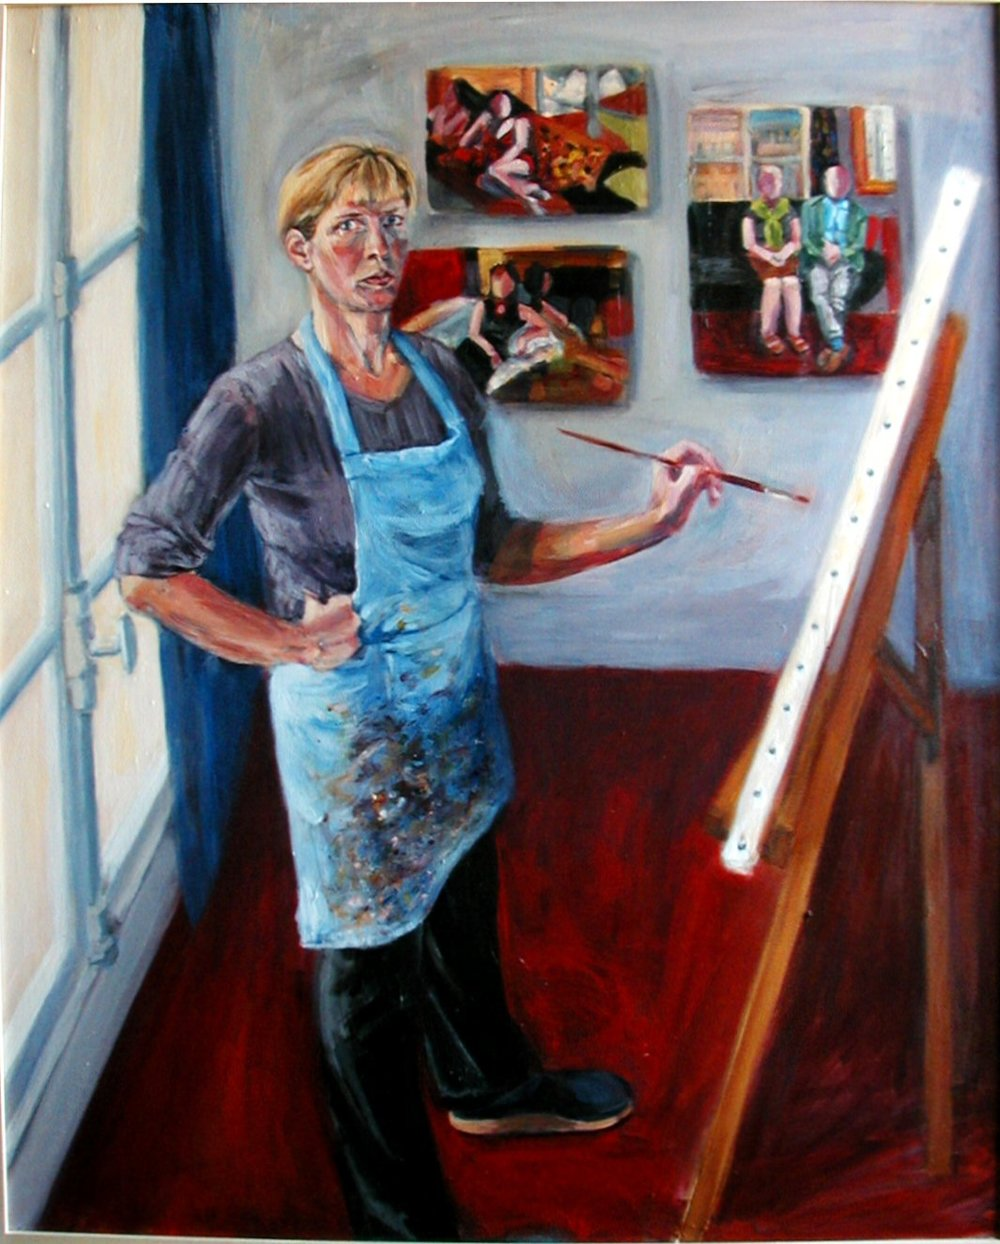 SELF-PORTRAIT WITH EXPATS (2004). Acrylic on canvas, 30 x 40 inches